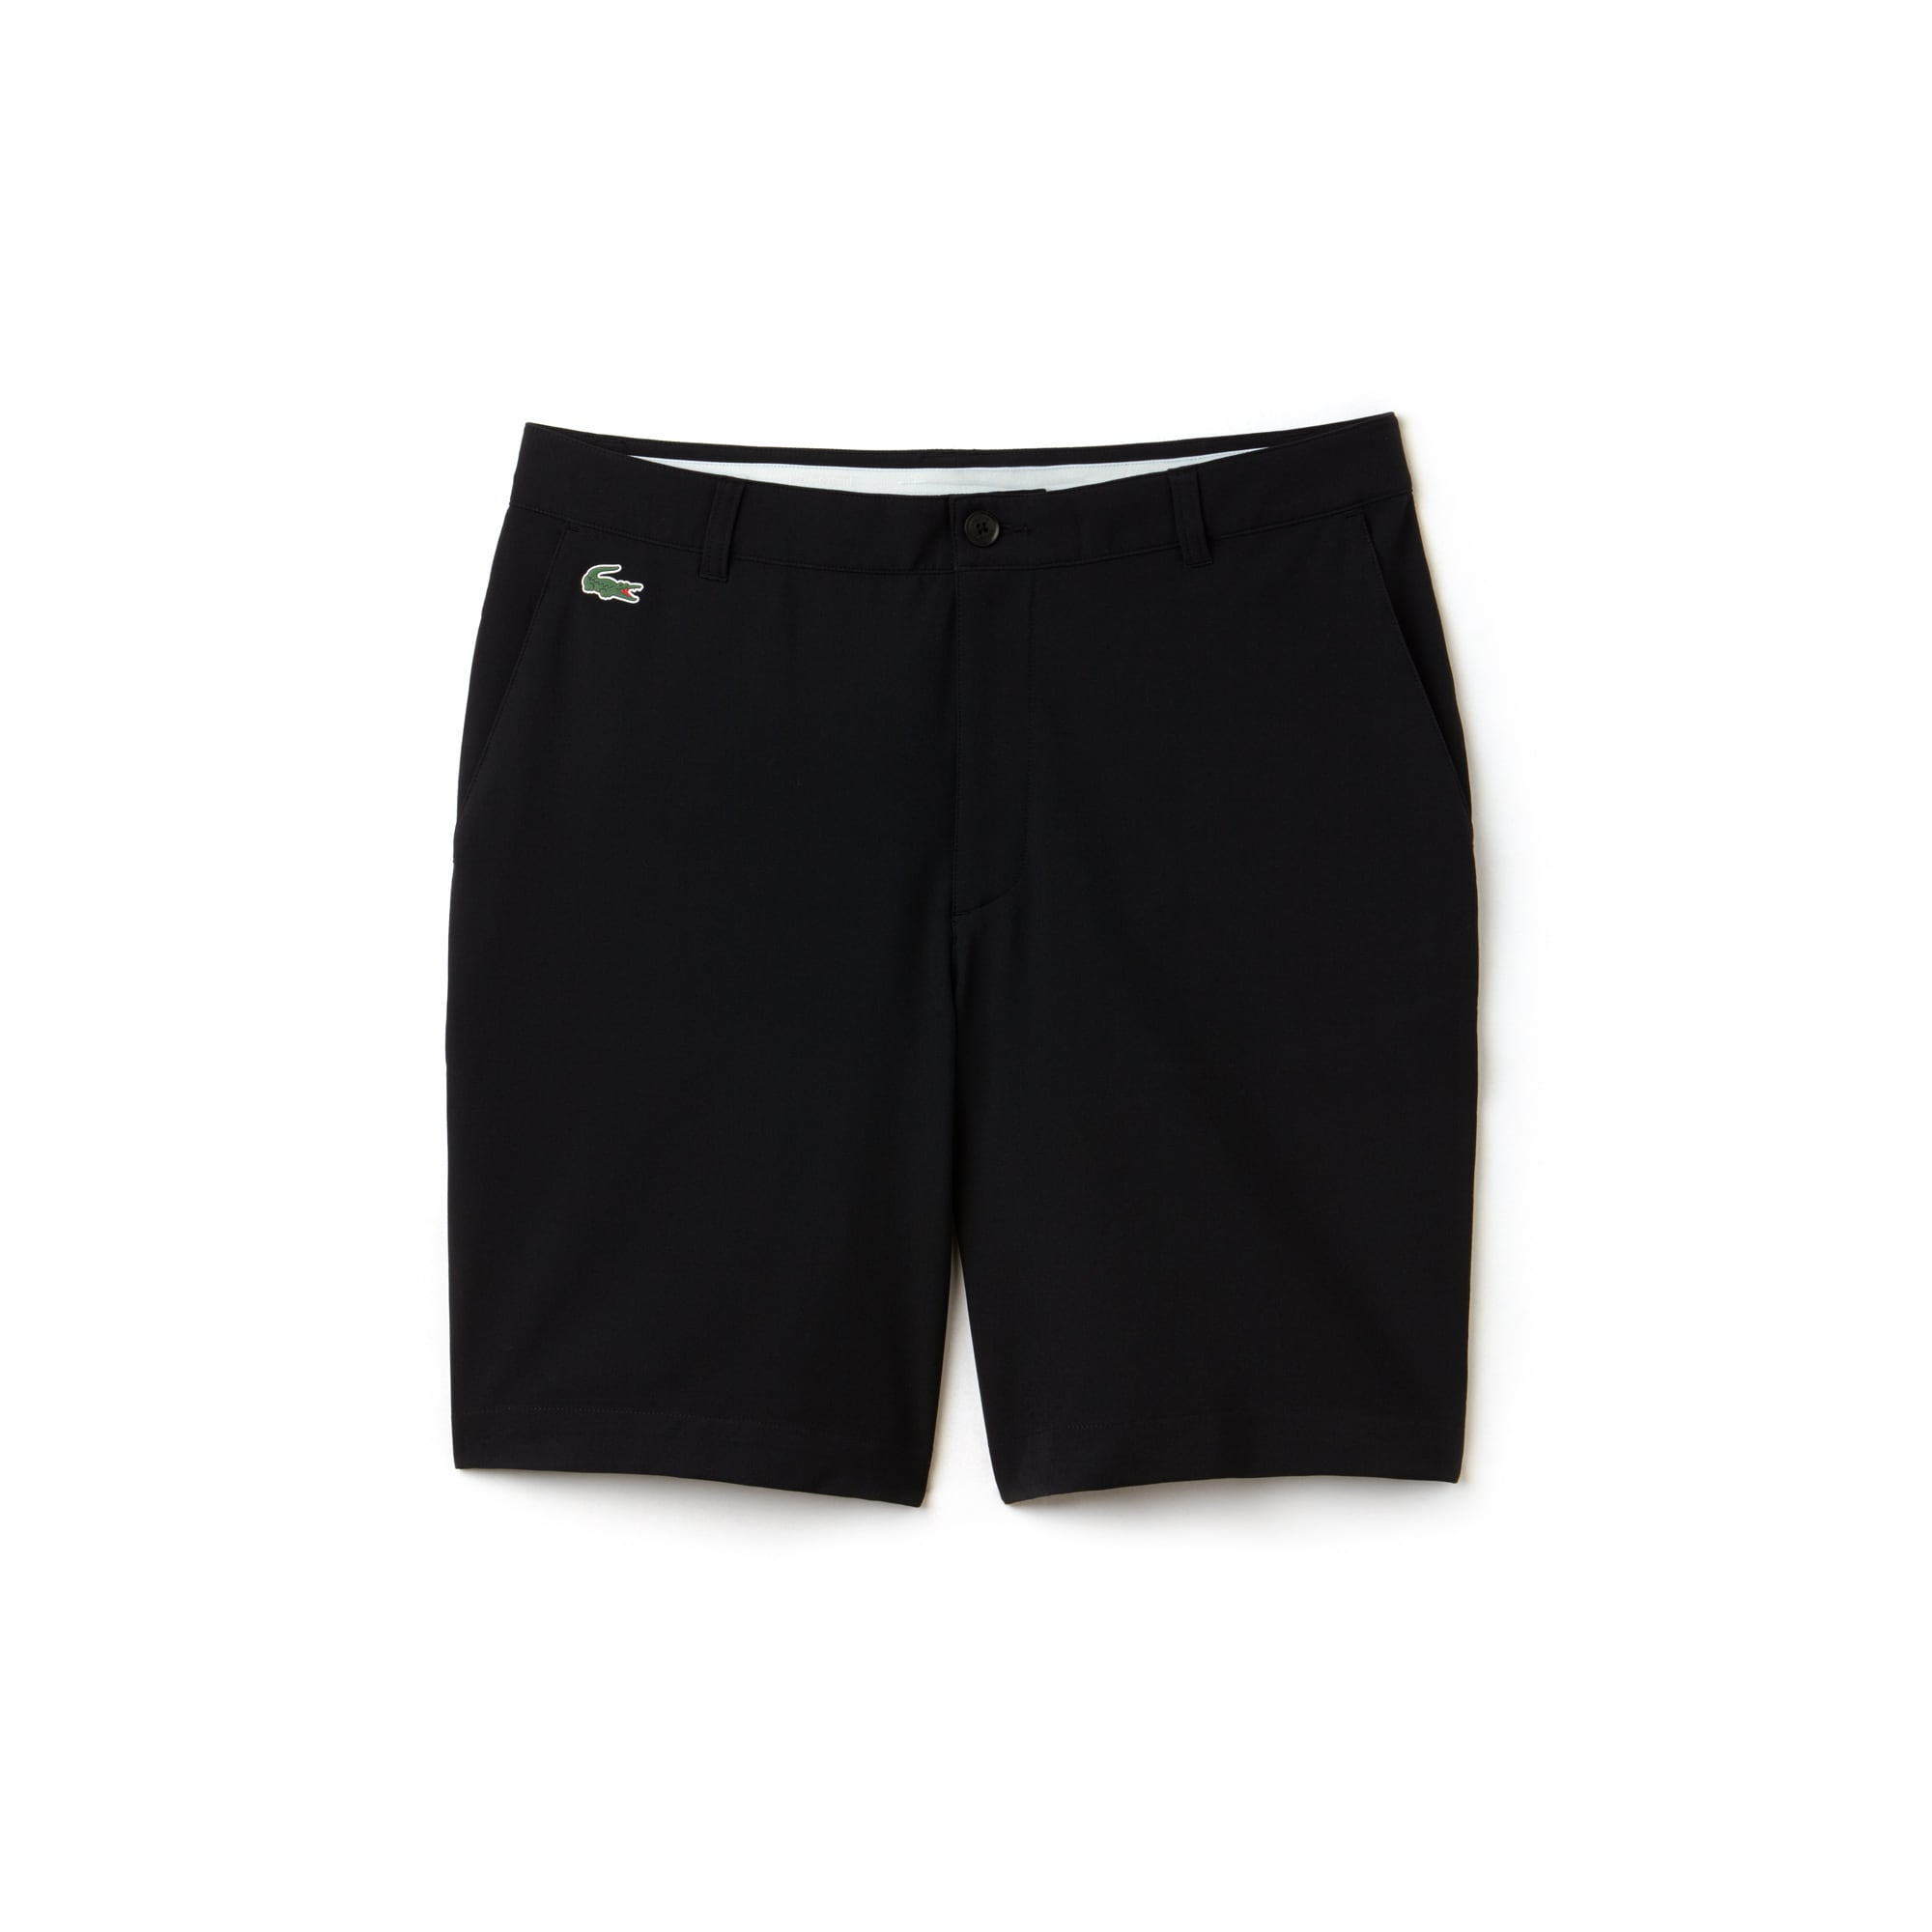 라코스테 Lacoste Mens SPORT Stretch Taffeta Technical Golf Bermuda Shorts,black